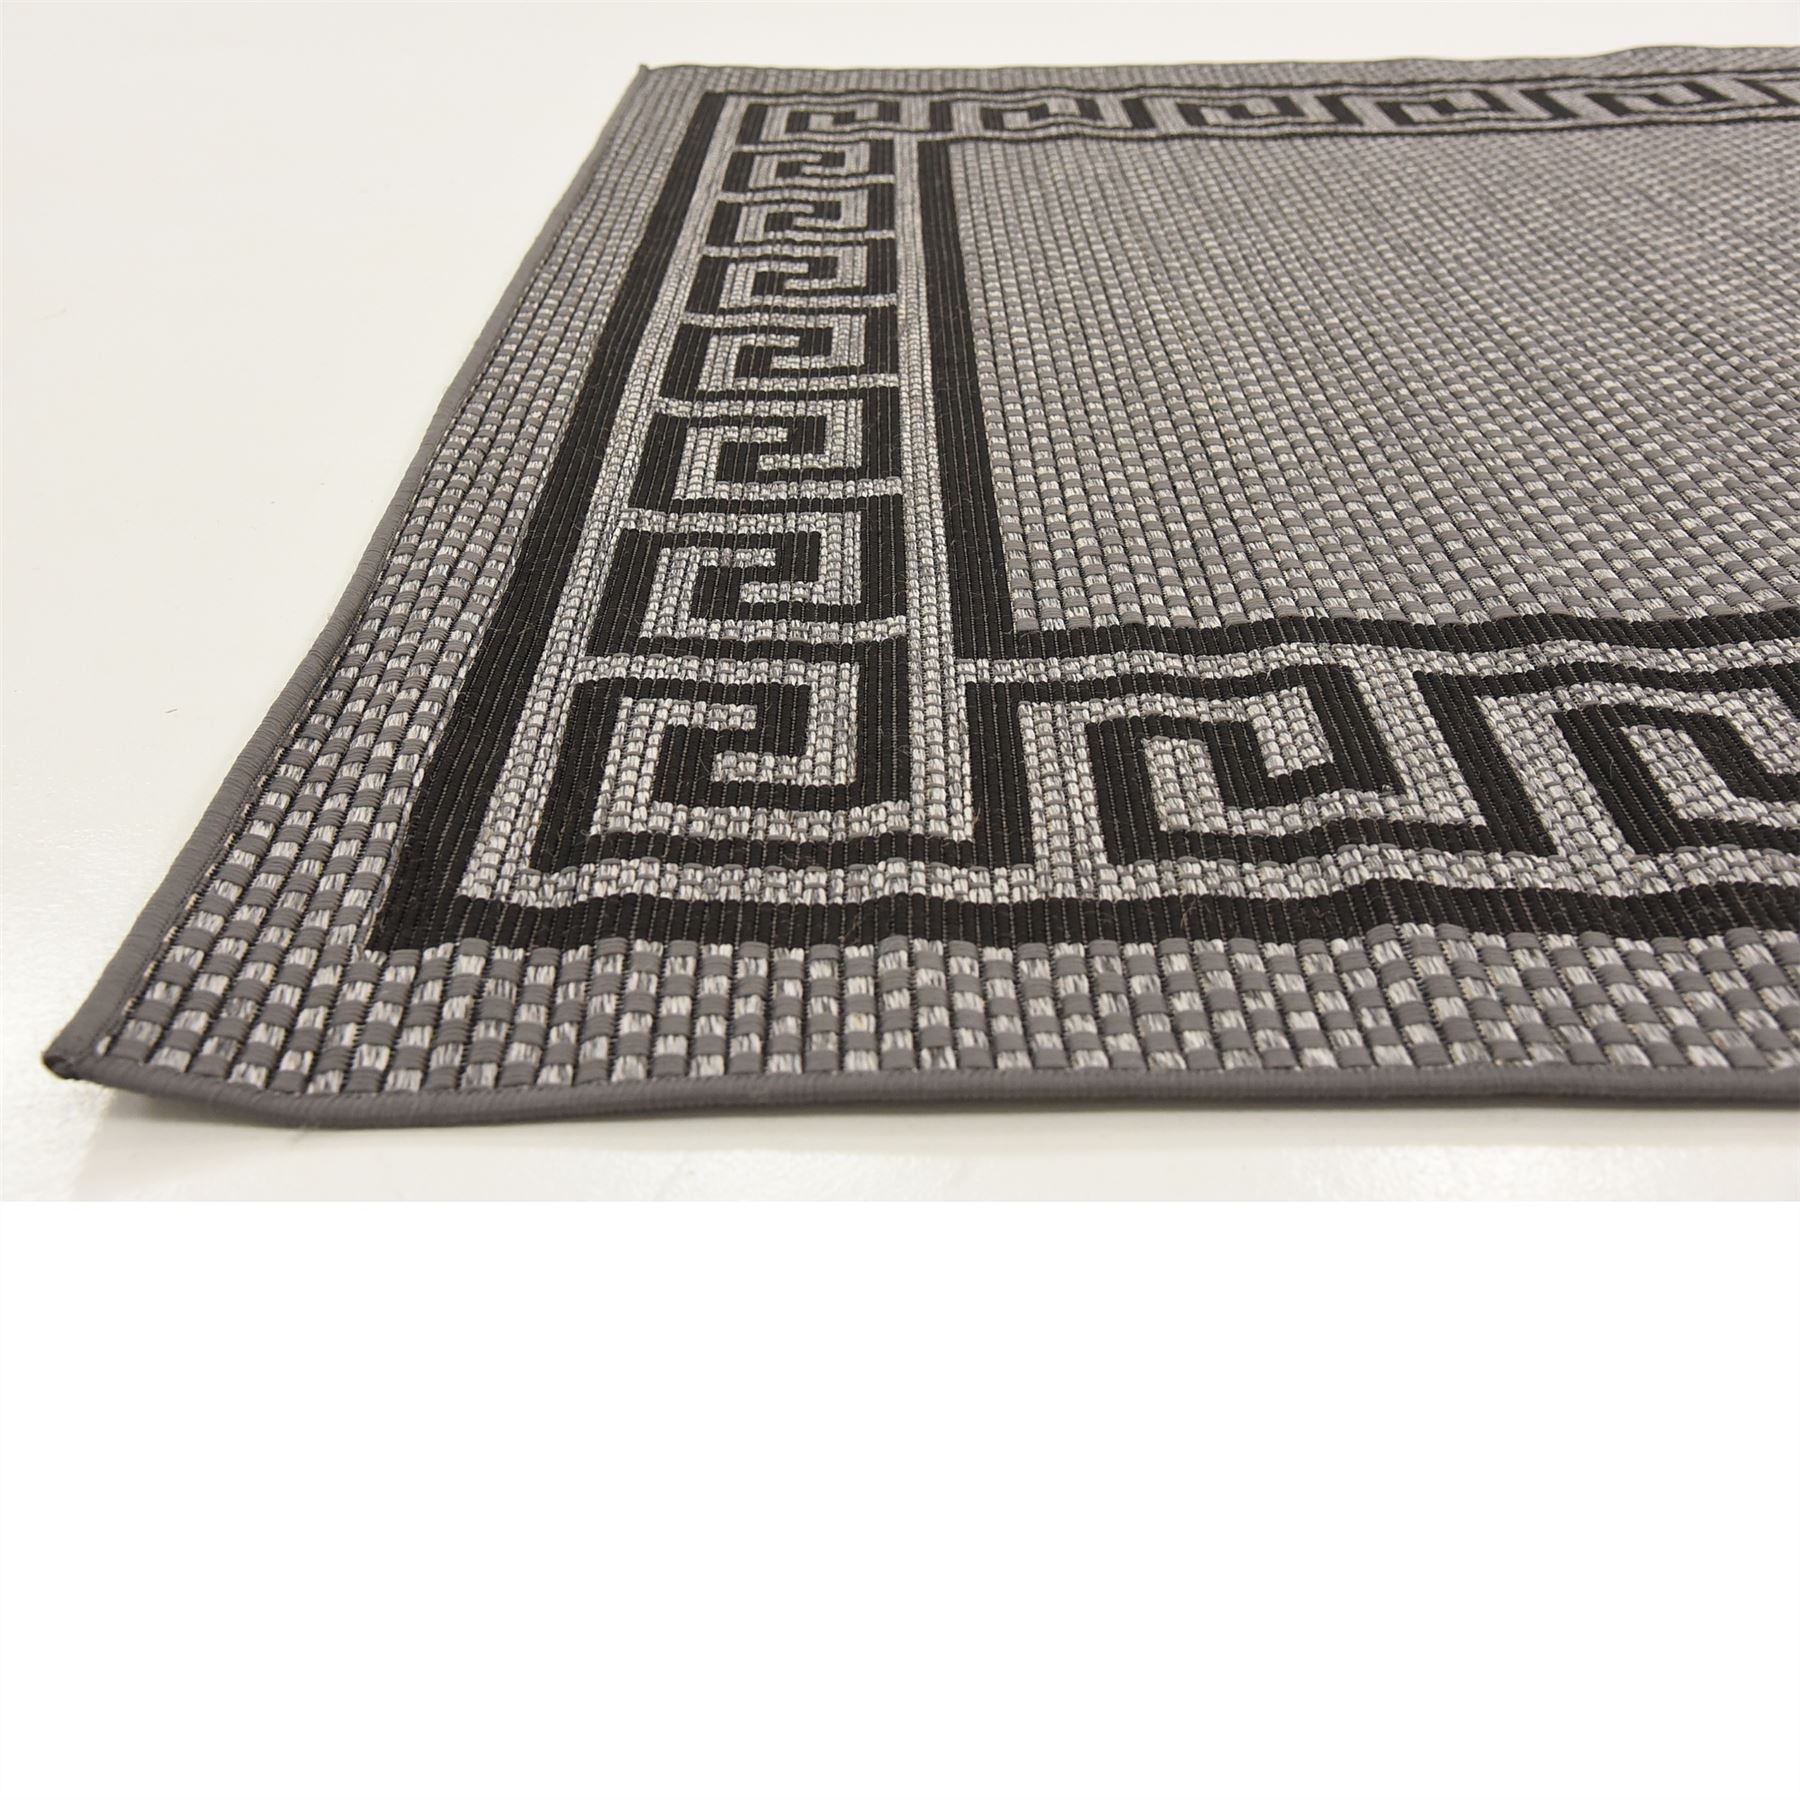 Black Graphic Woven Emerson Indoor Outdoor Area Rug: Modern Outdoor Thin Area Rug Contemporary Plain Large